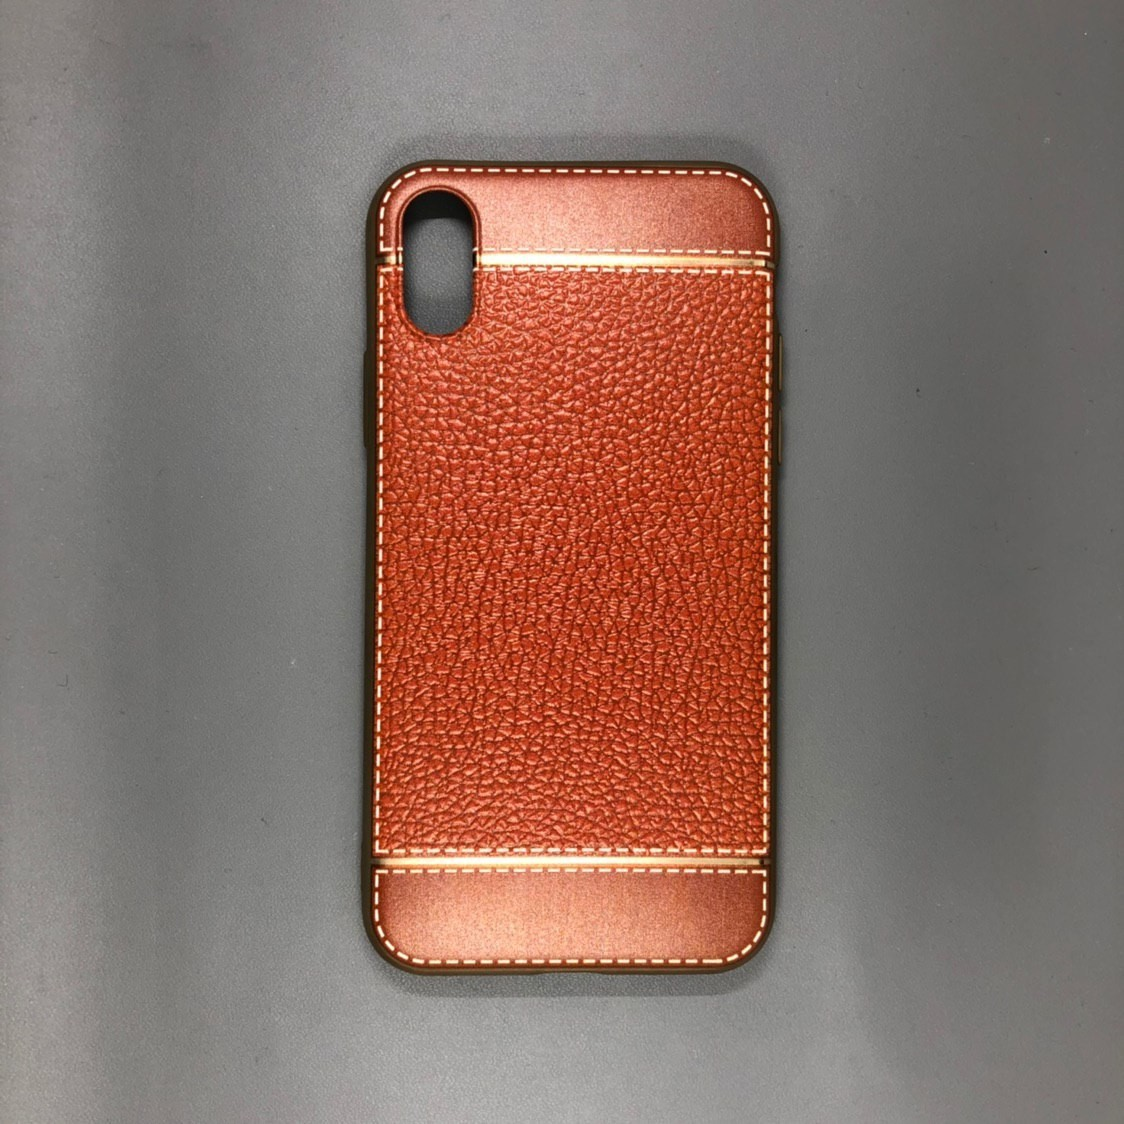 iPhone X Plastic Gold/Brown